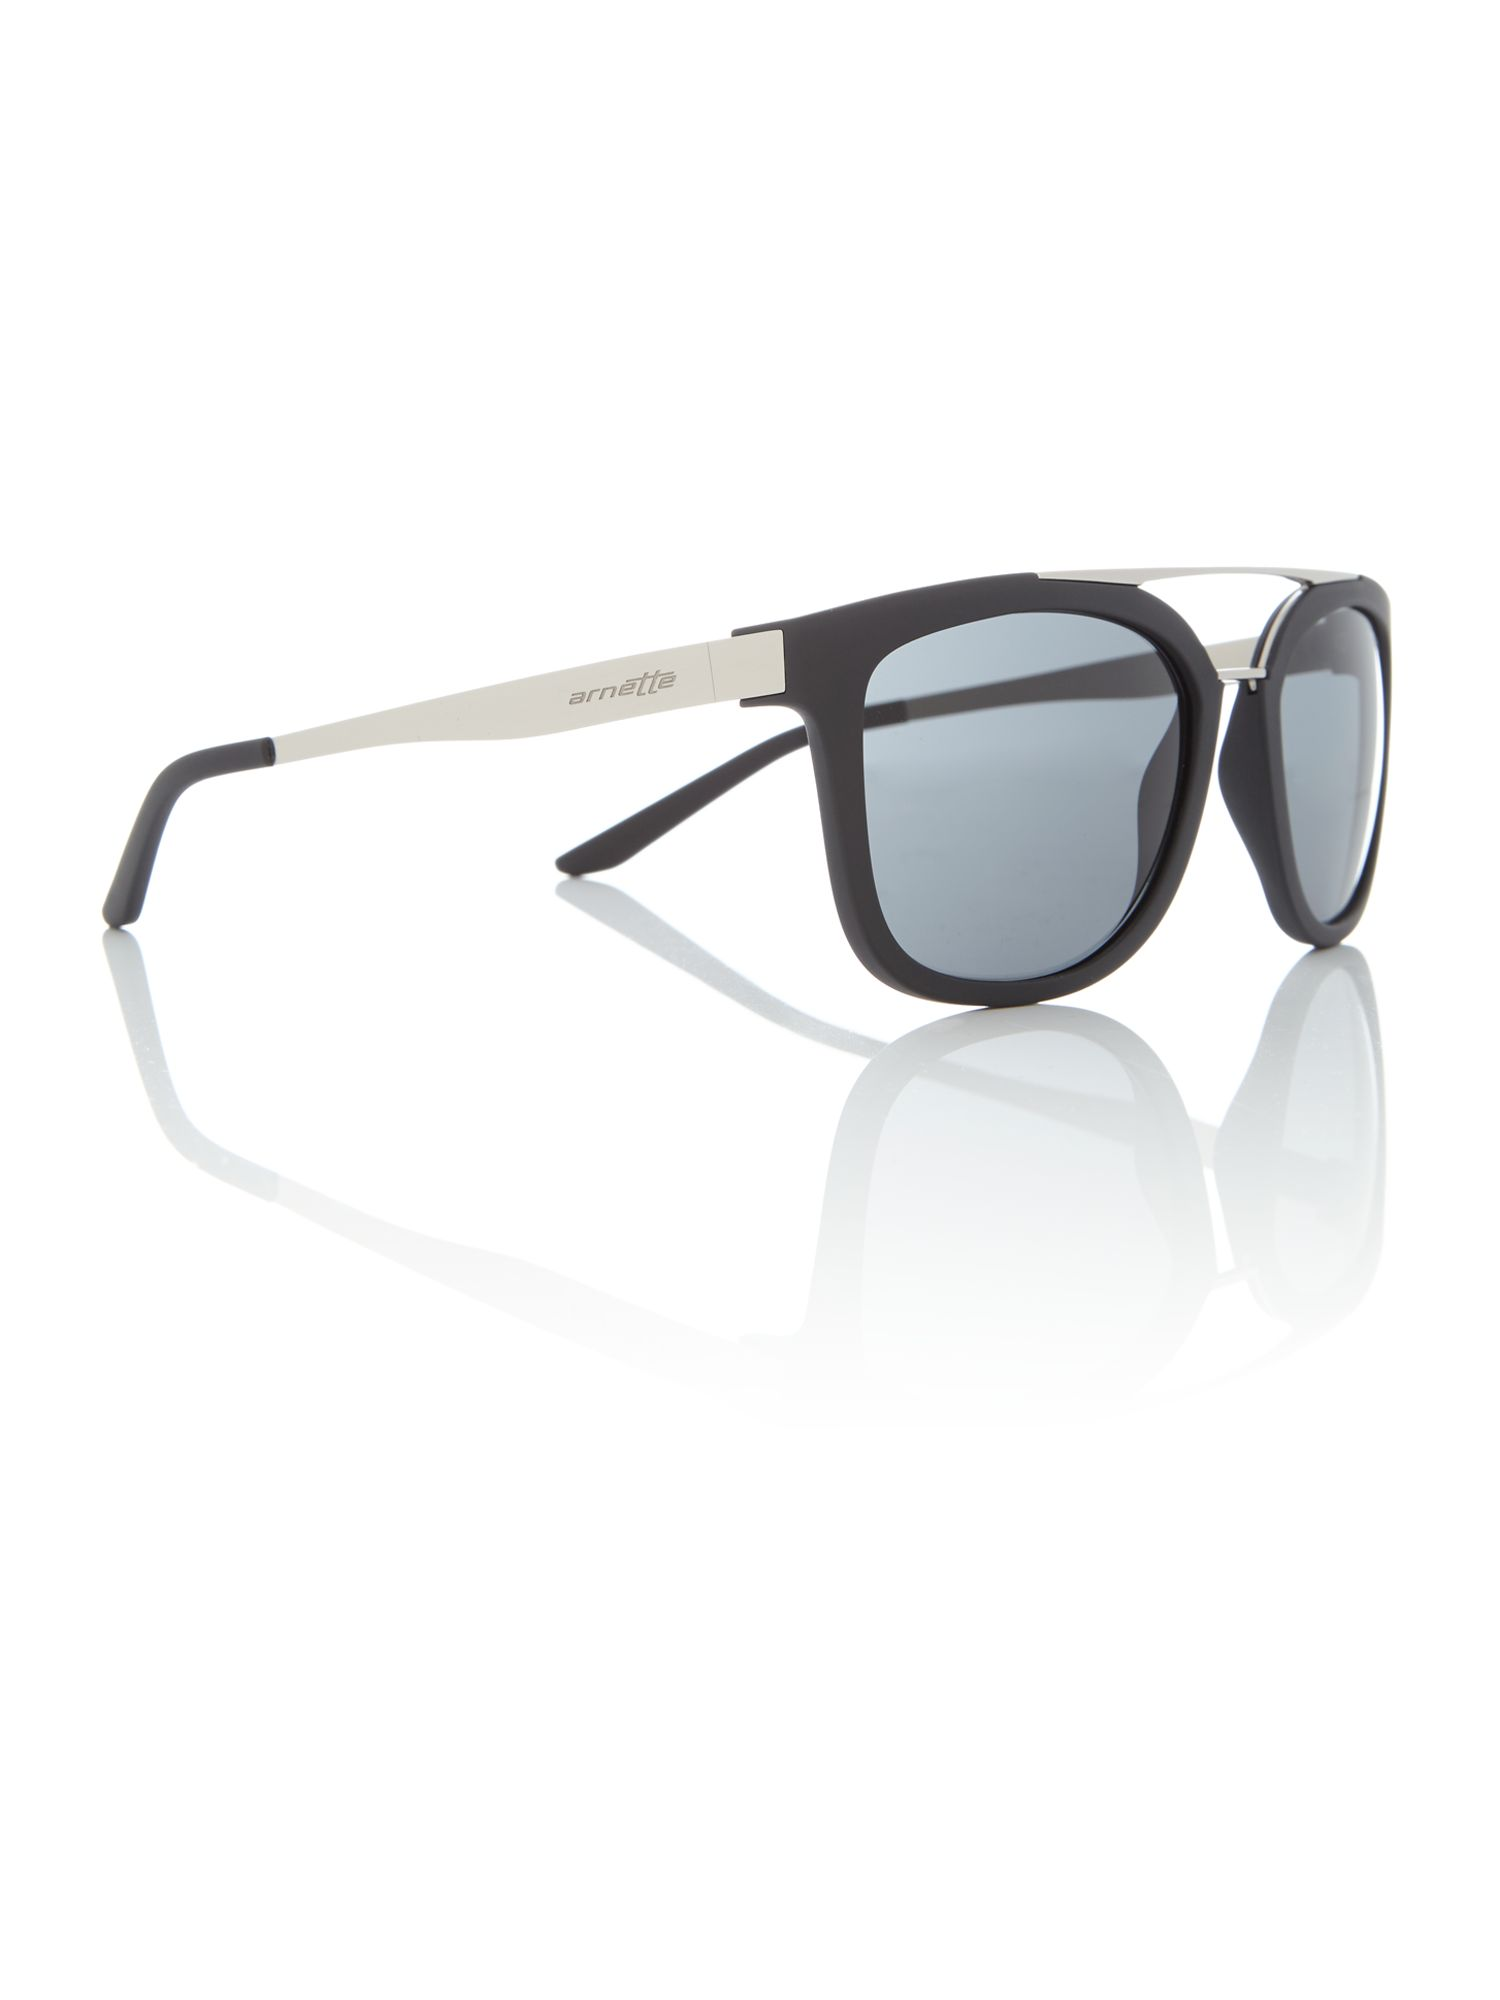 Arnette Black phantos AN4232 sunglasses